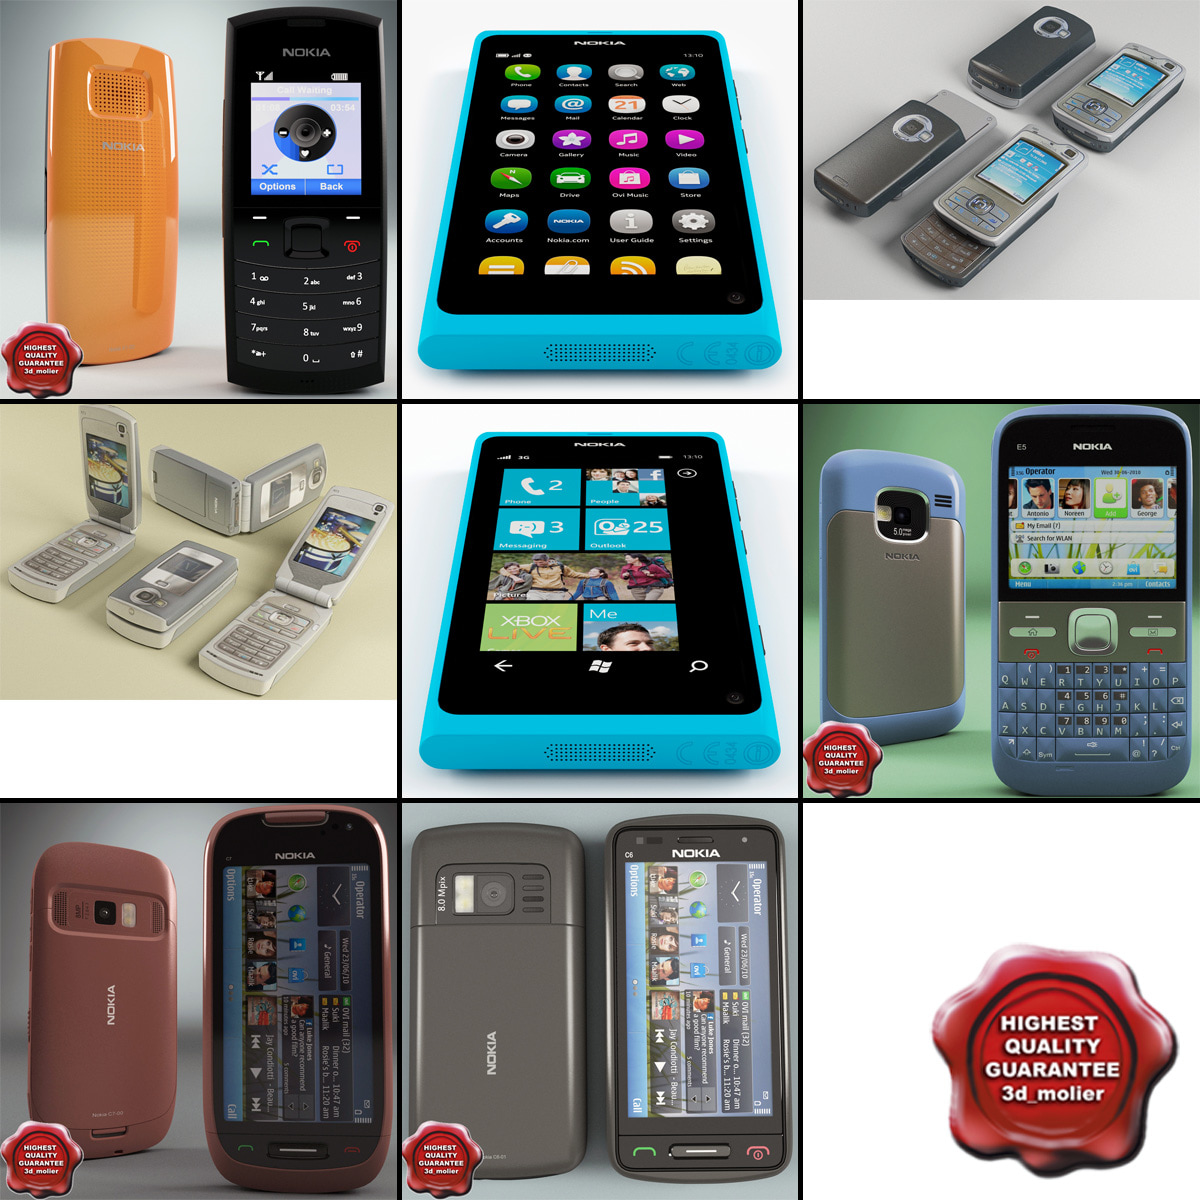 Nokia_Phones_Collection_V5_00.jpg